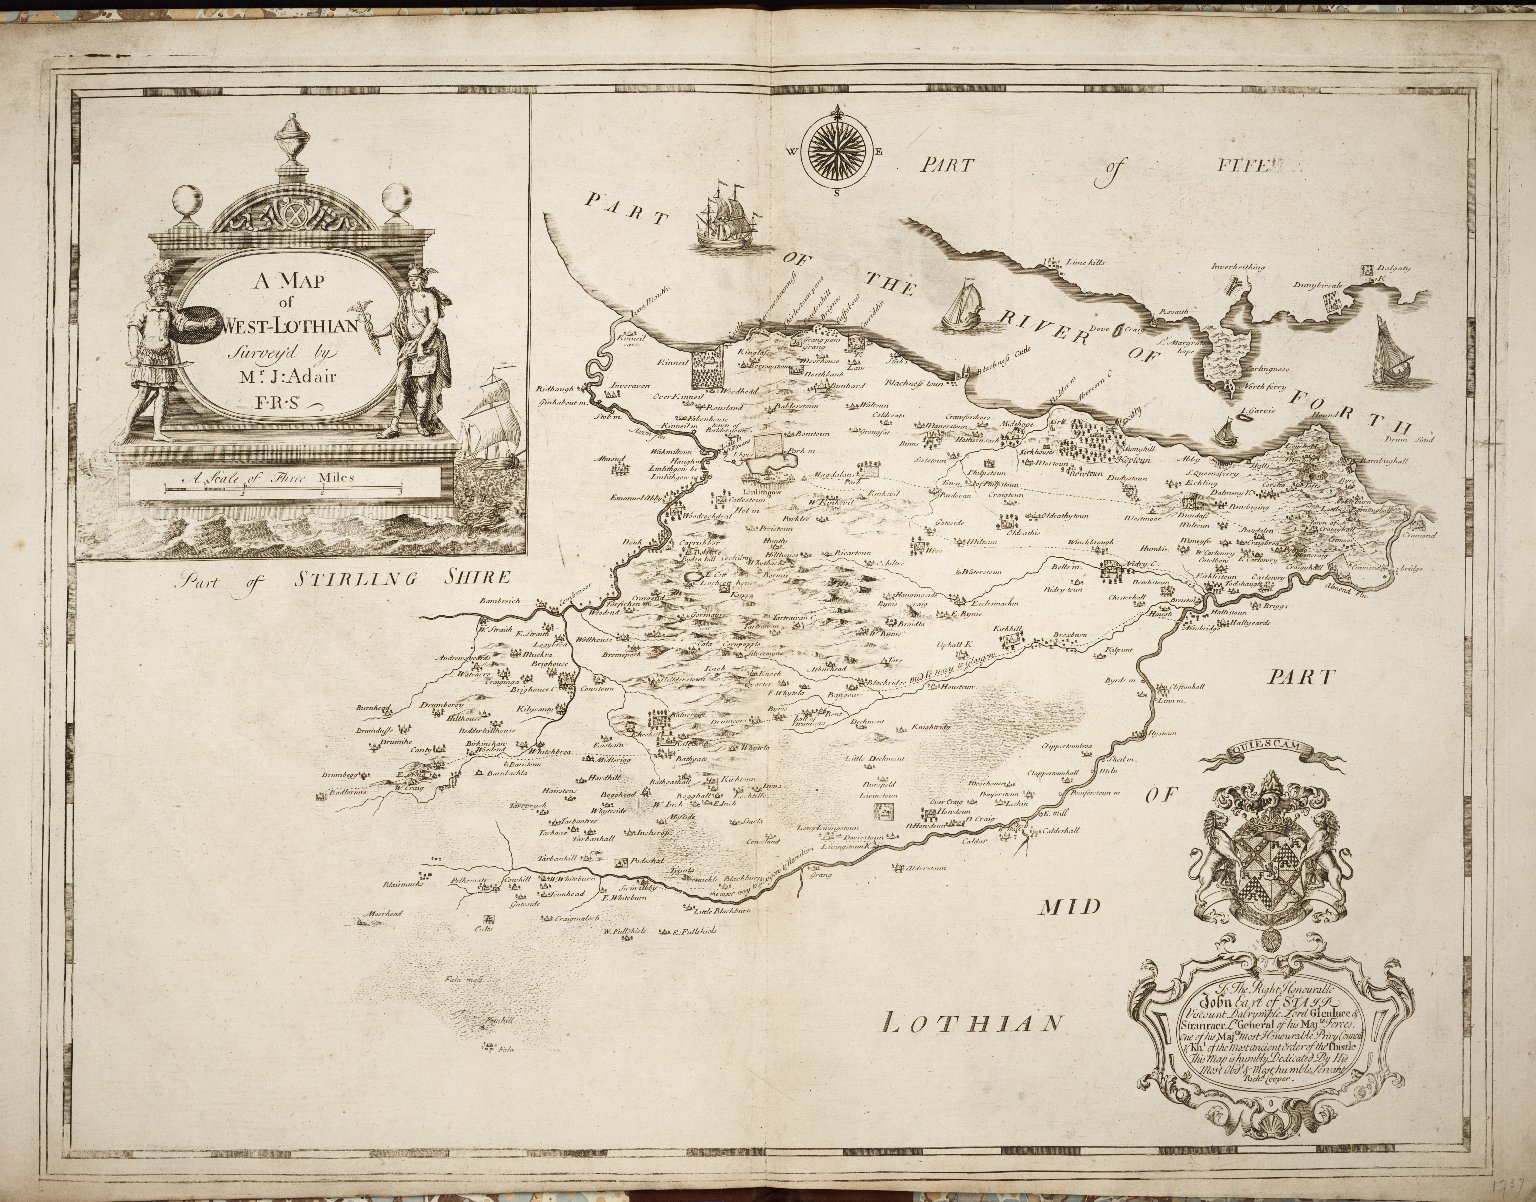 A MAP of WEST-LOTHIAN [1 of 1]